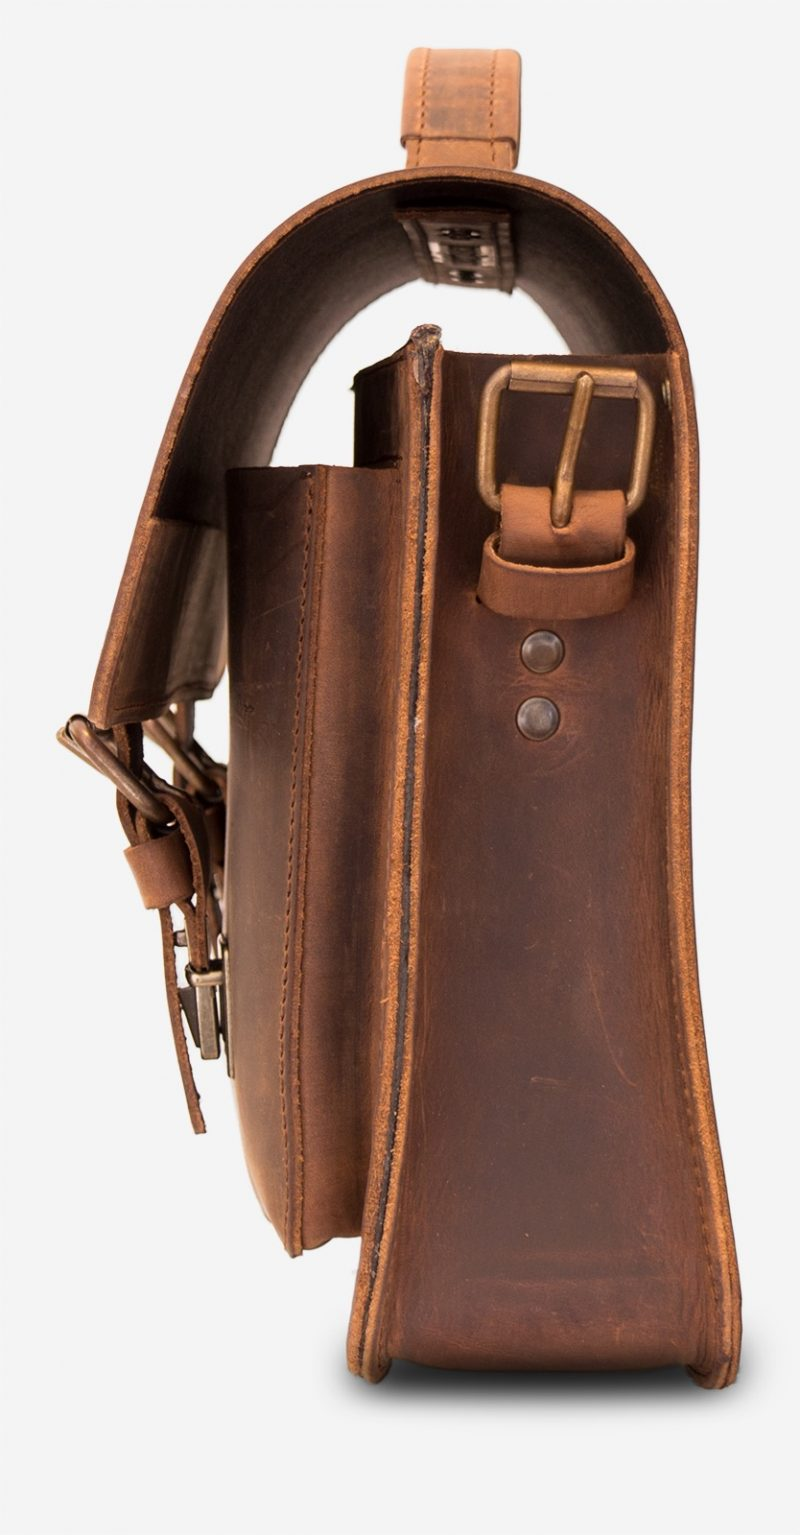 Side view of the brown leather briefcase with one main compartment and one front pocket.